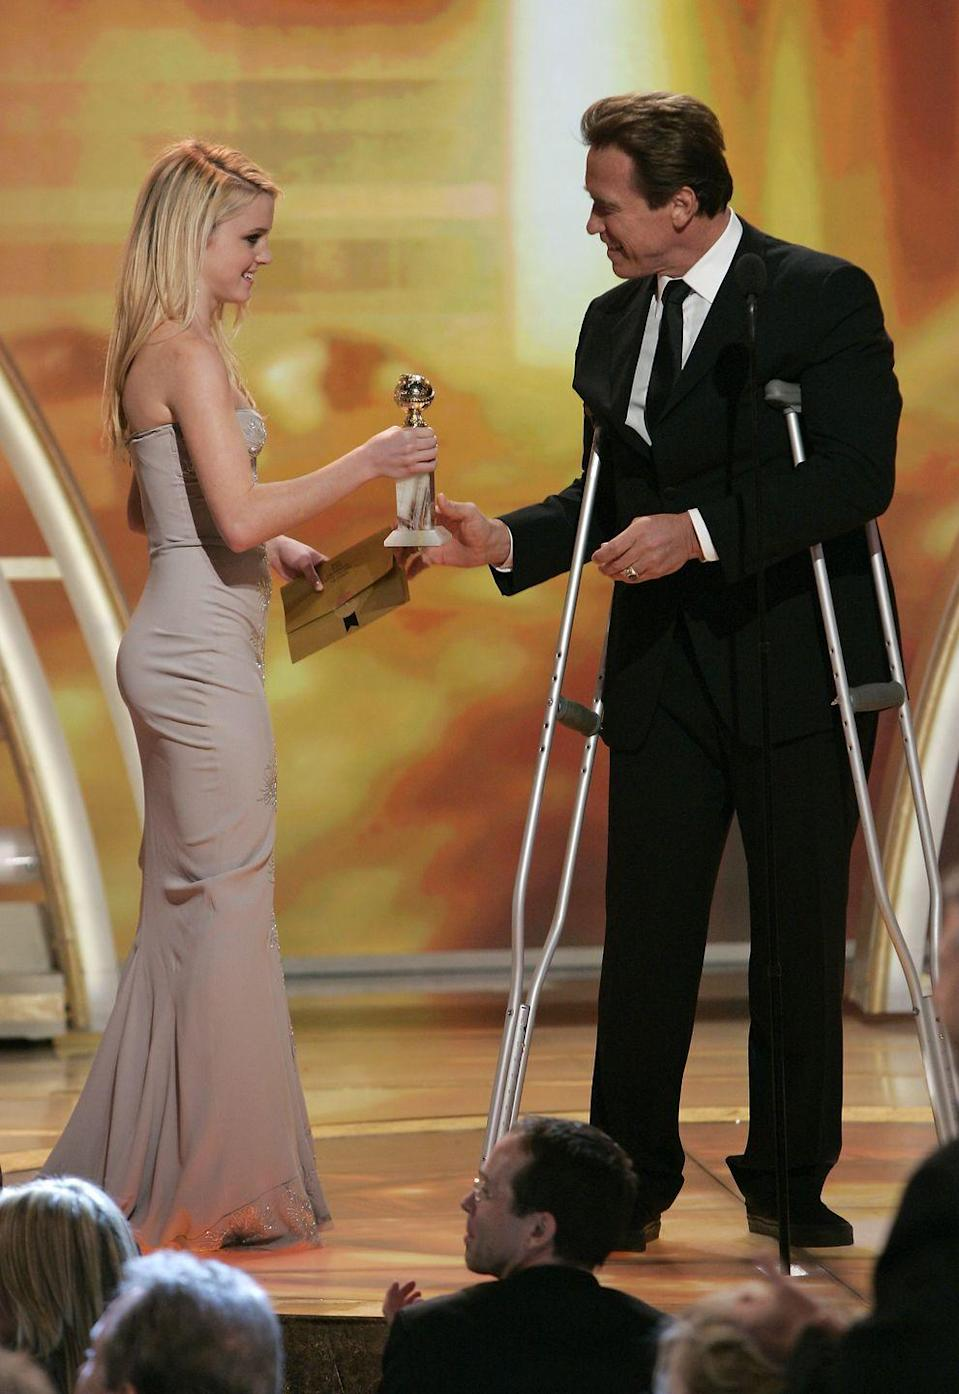 "<p>Yup, that's Jack Nicholson's daughter to the left of Arnold Schwarzenegger as he accepts his Golden Globe. How'd she land such a high-profile job? She was named 2007's <a href=""https://www.townandcountrymag.com/leisure/arts-and-culture/g25734384/best-miss-golden-globes-ambassadors-ever/?"" rel=""nofollow noopener"" target=""_blank"" data-ylk=""slk:Miss Golden Globe"" class=""link rapid-noclick-resp"">Miss Golden Globe</a>, a position given to the child of a different celebrity each year.</p>"